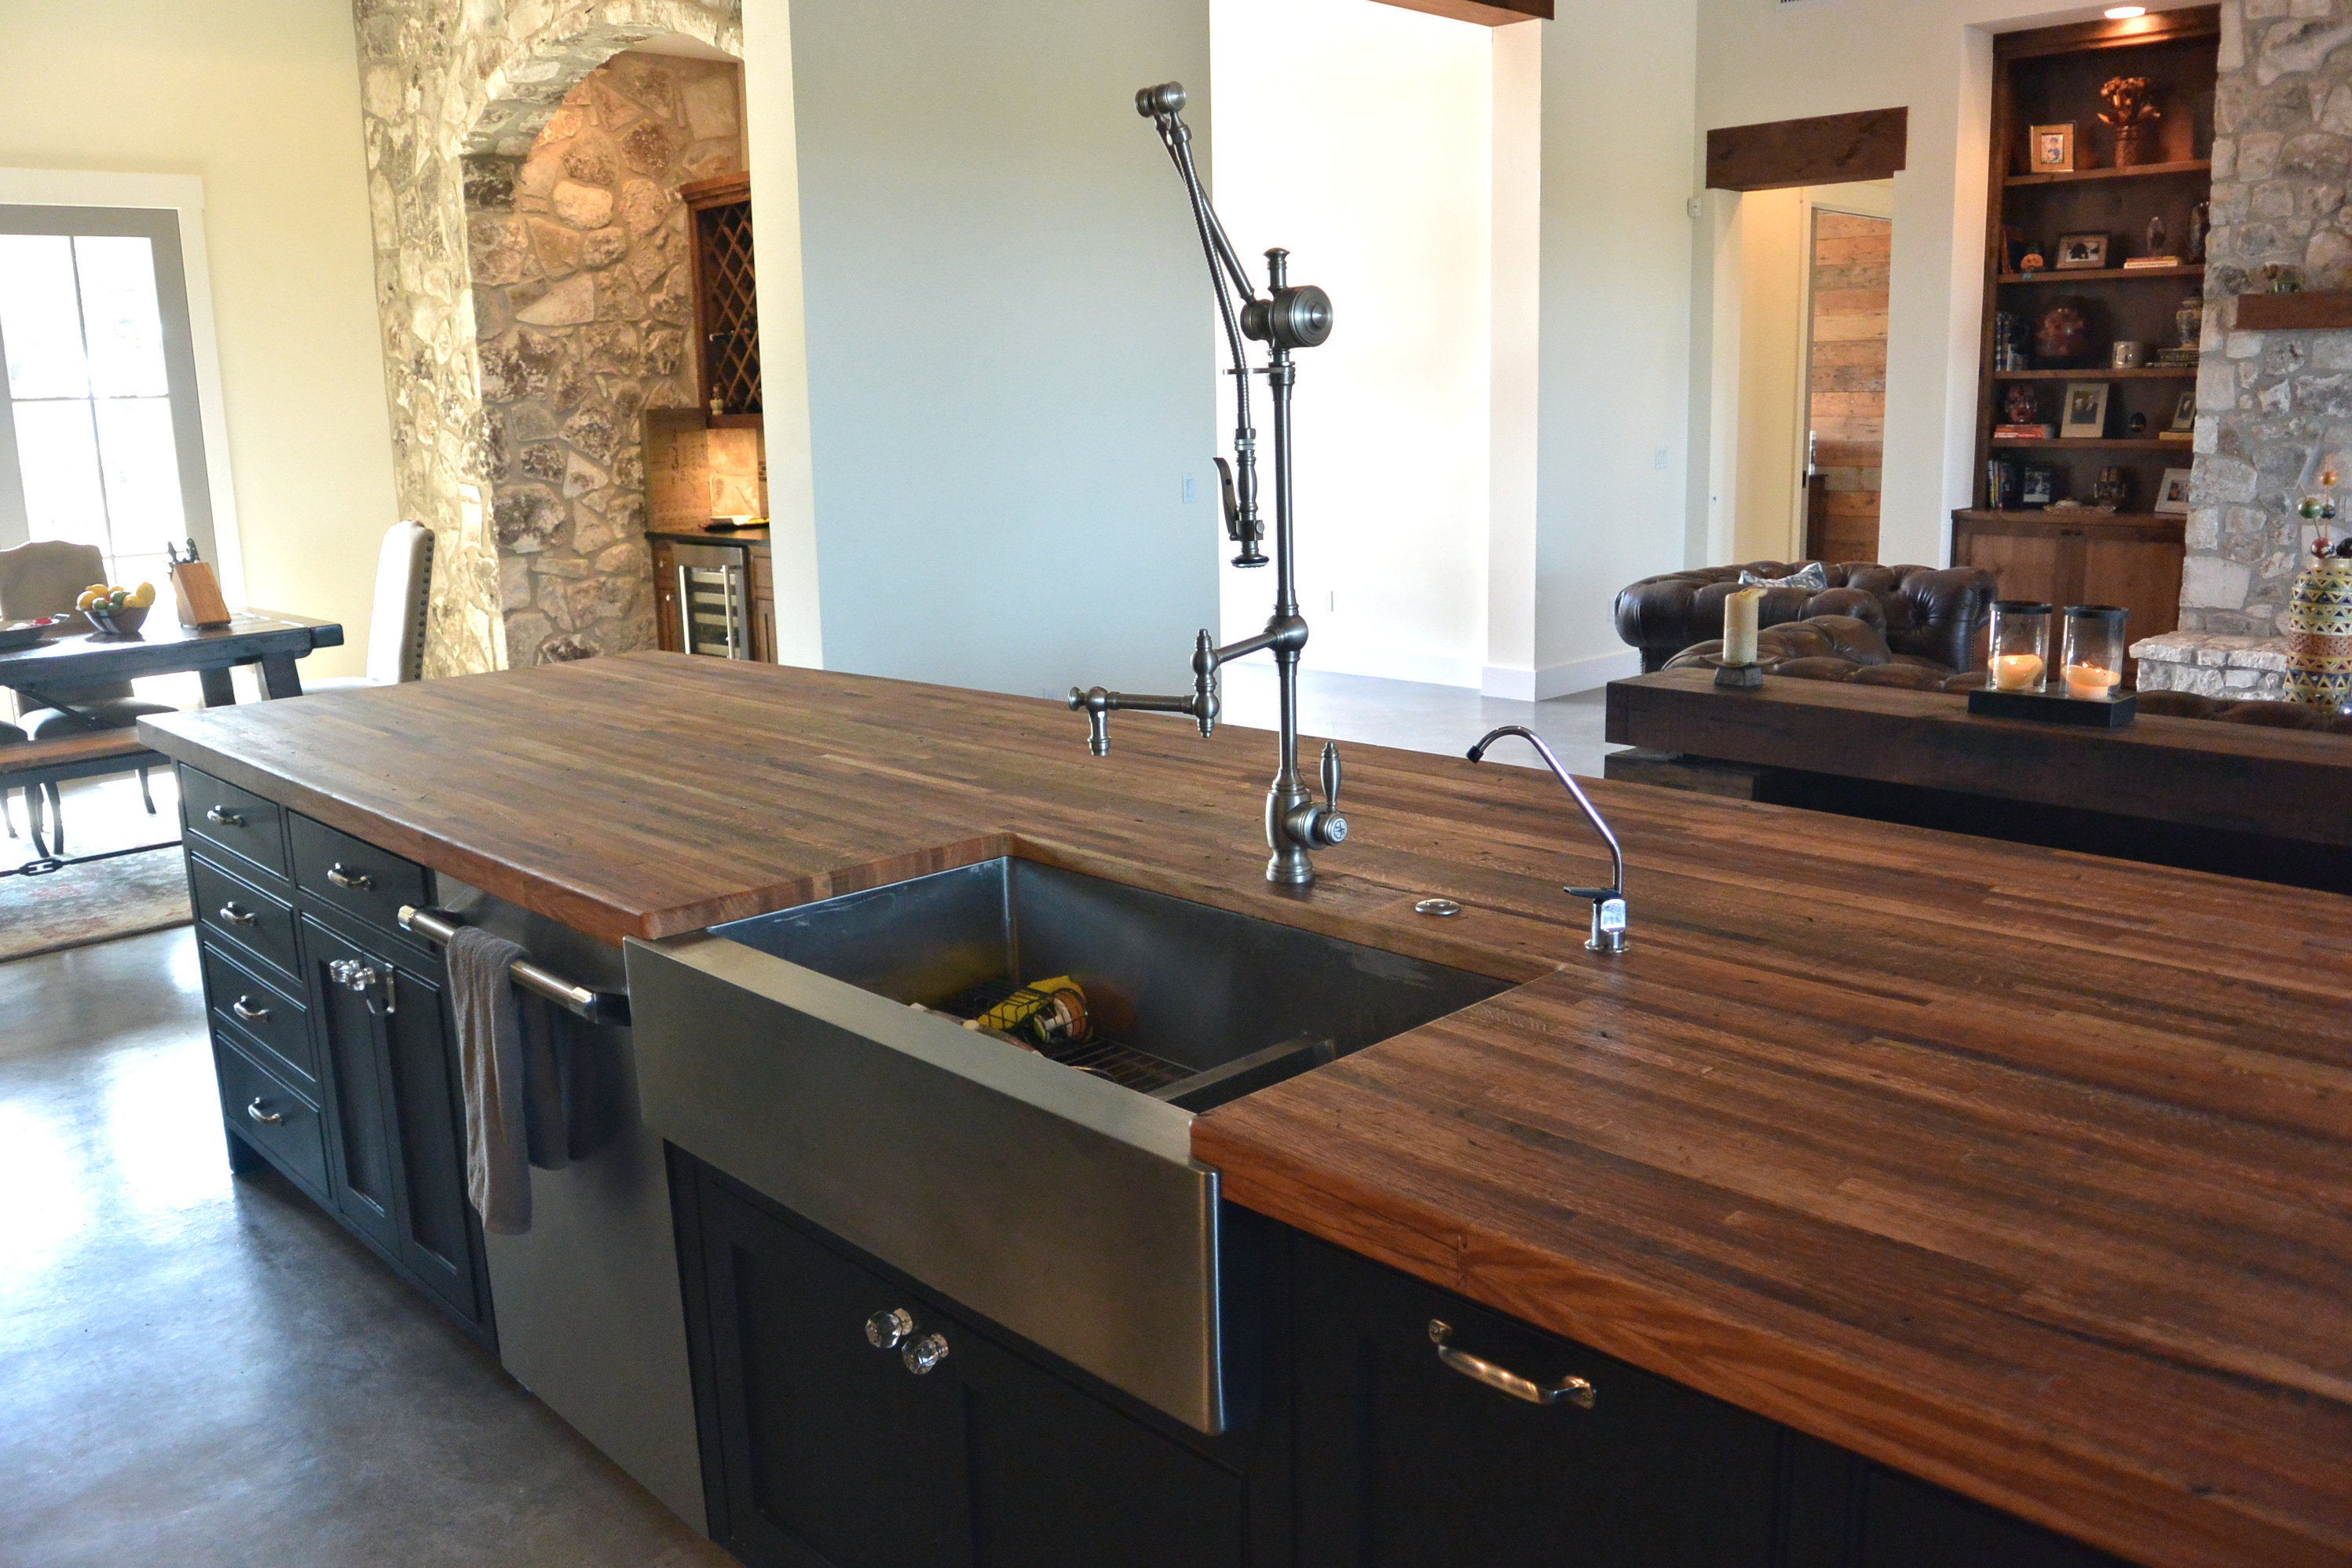 Delicieux Reclaimed Boxcar Flooring Edge Grain Wood Island Countertop With Tung Oil  Finish.